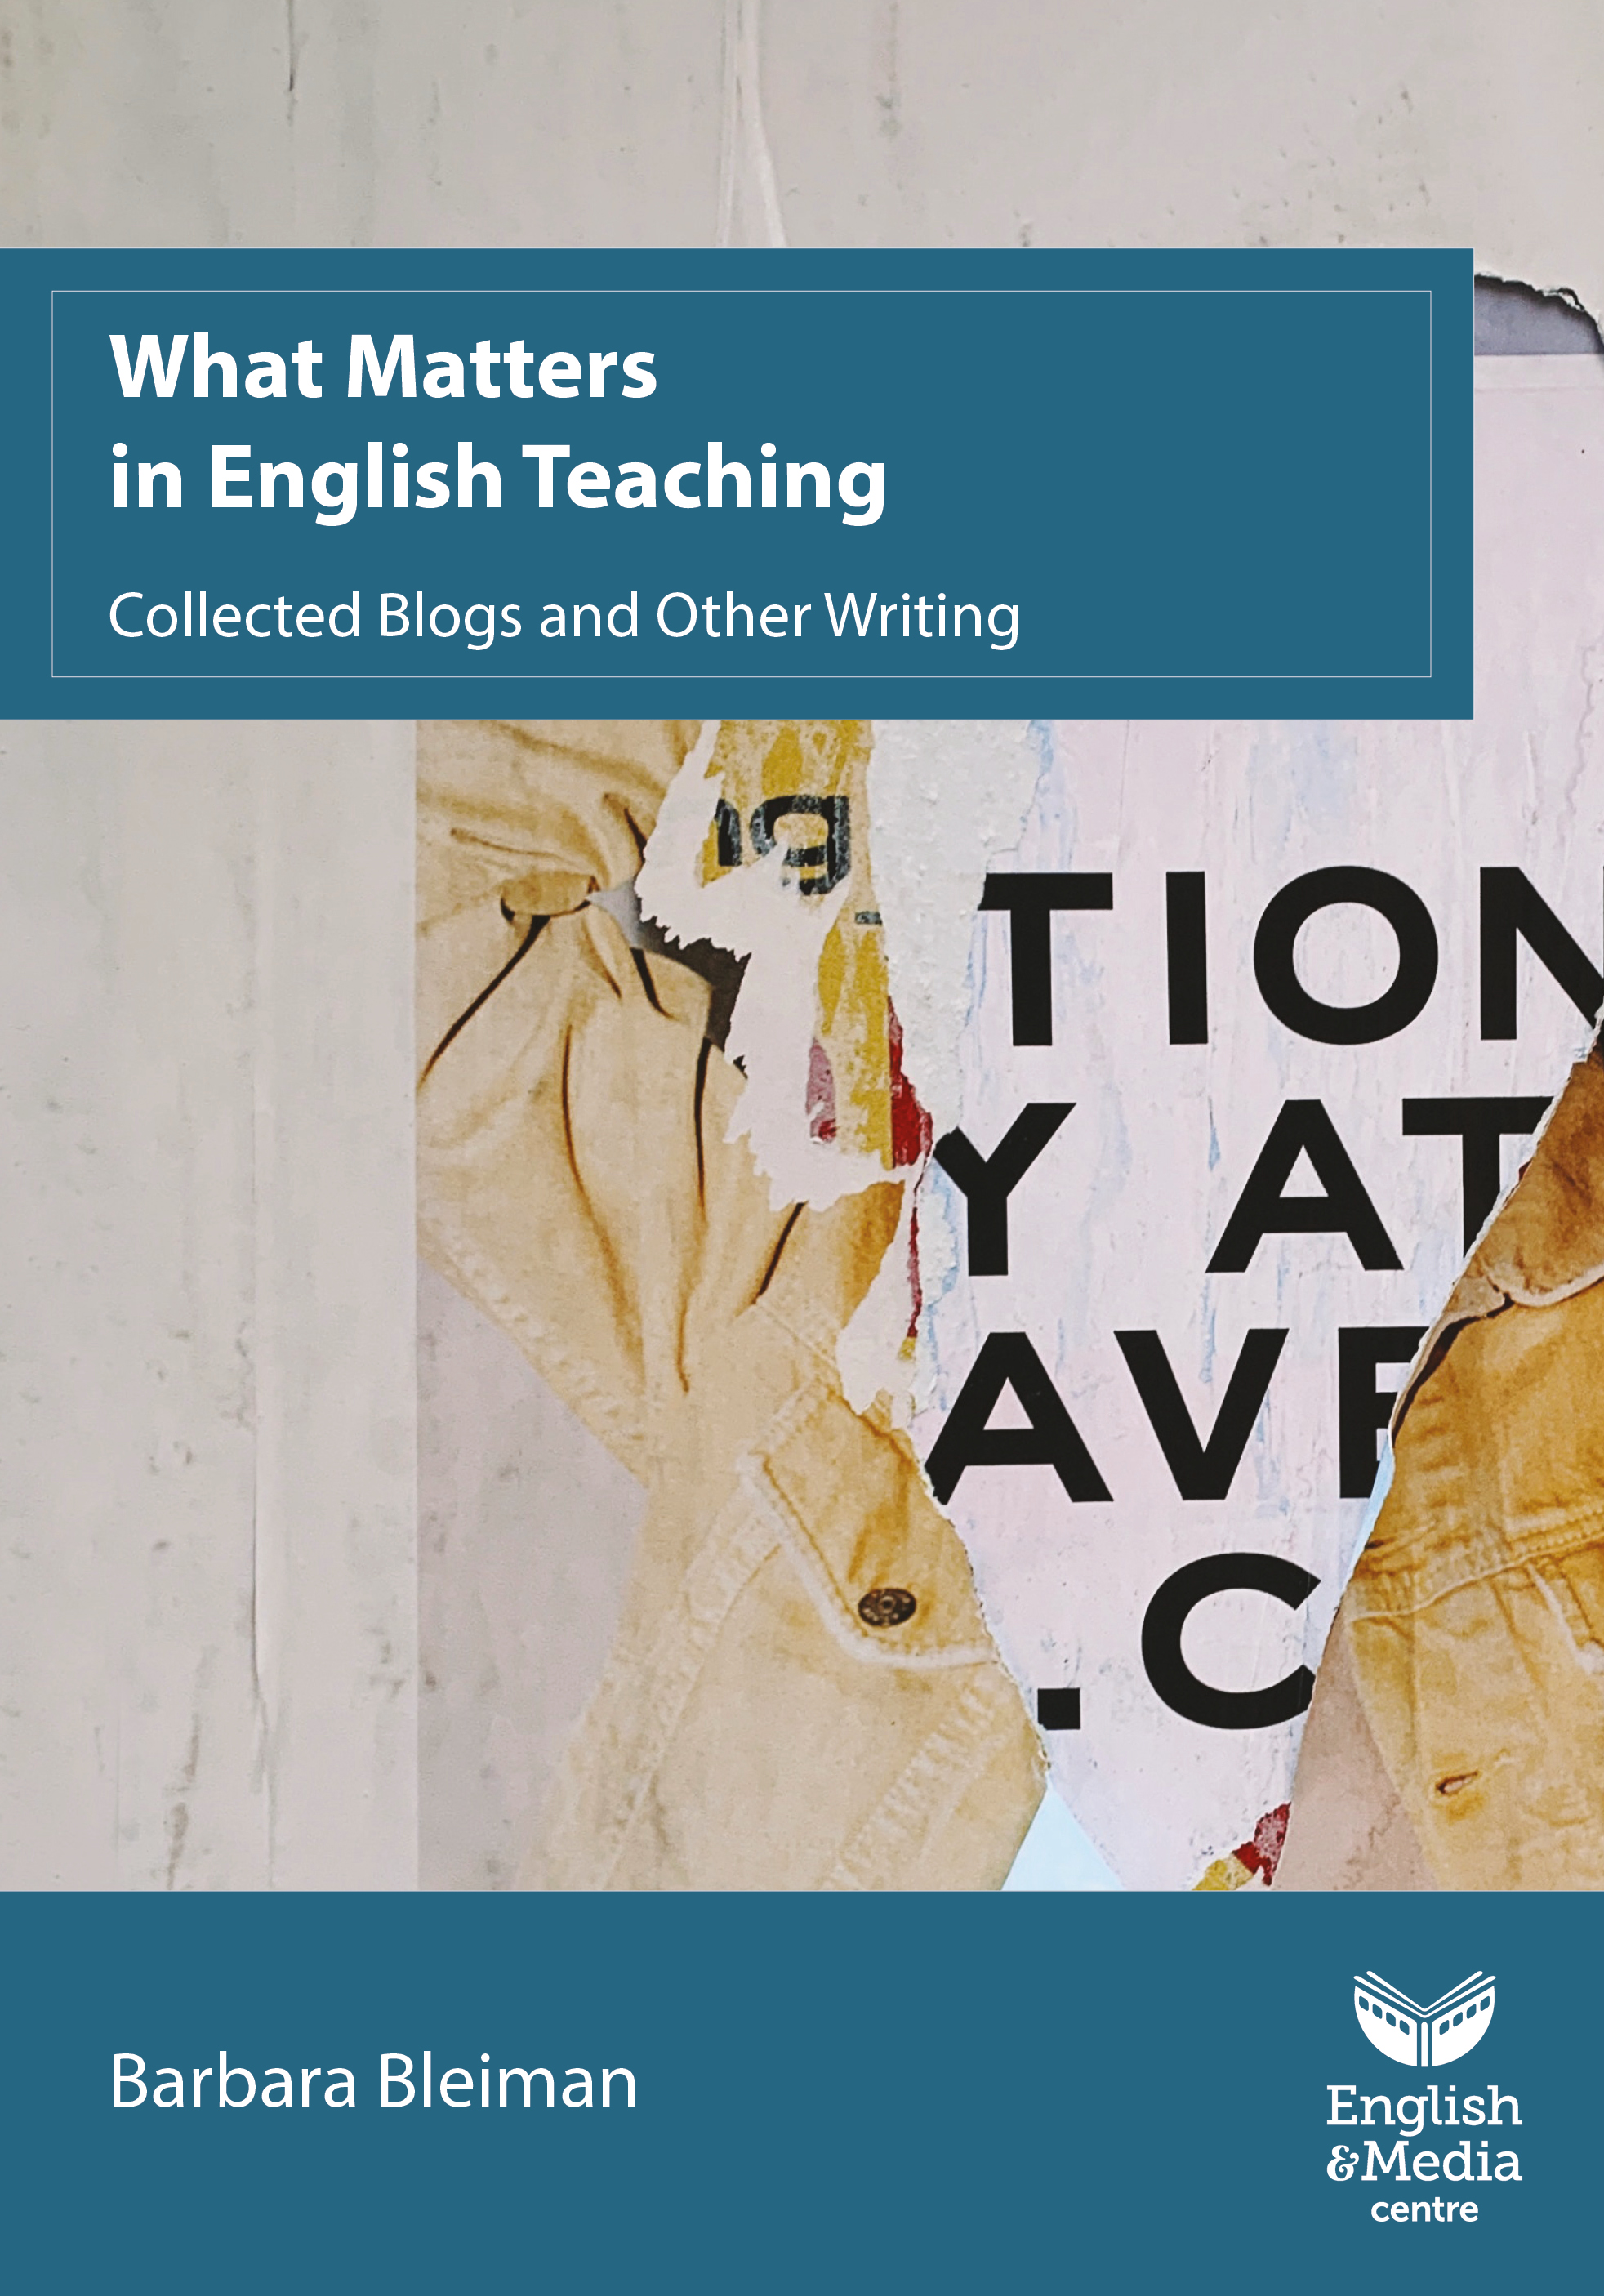 Cover image for What Matters in English Teaching Collected Blogs and Other Writing – Barbara Bleiman (Print)